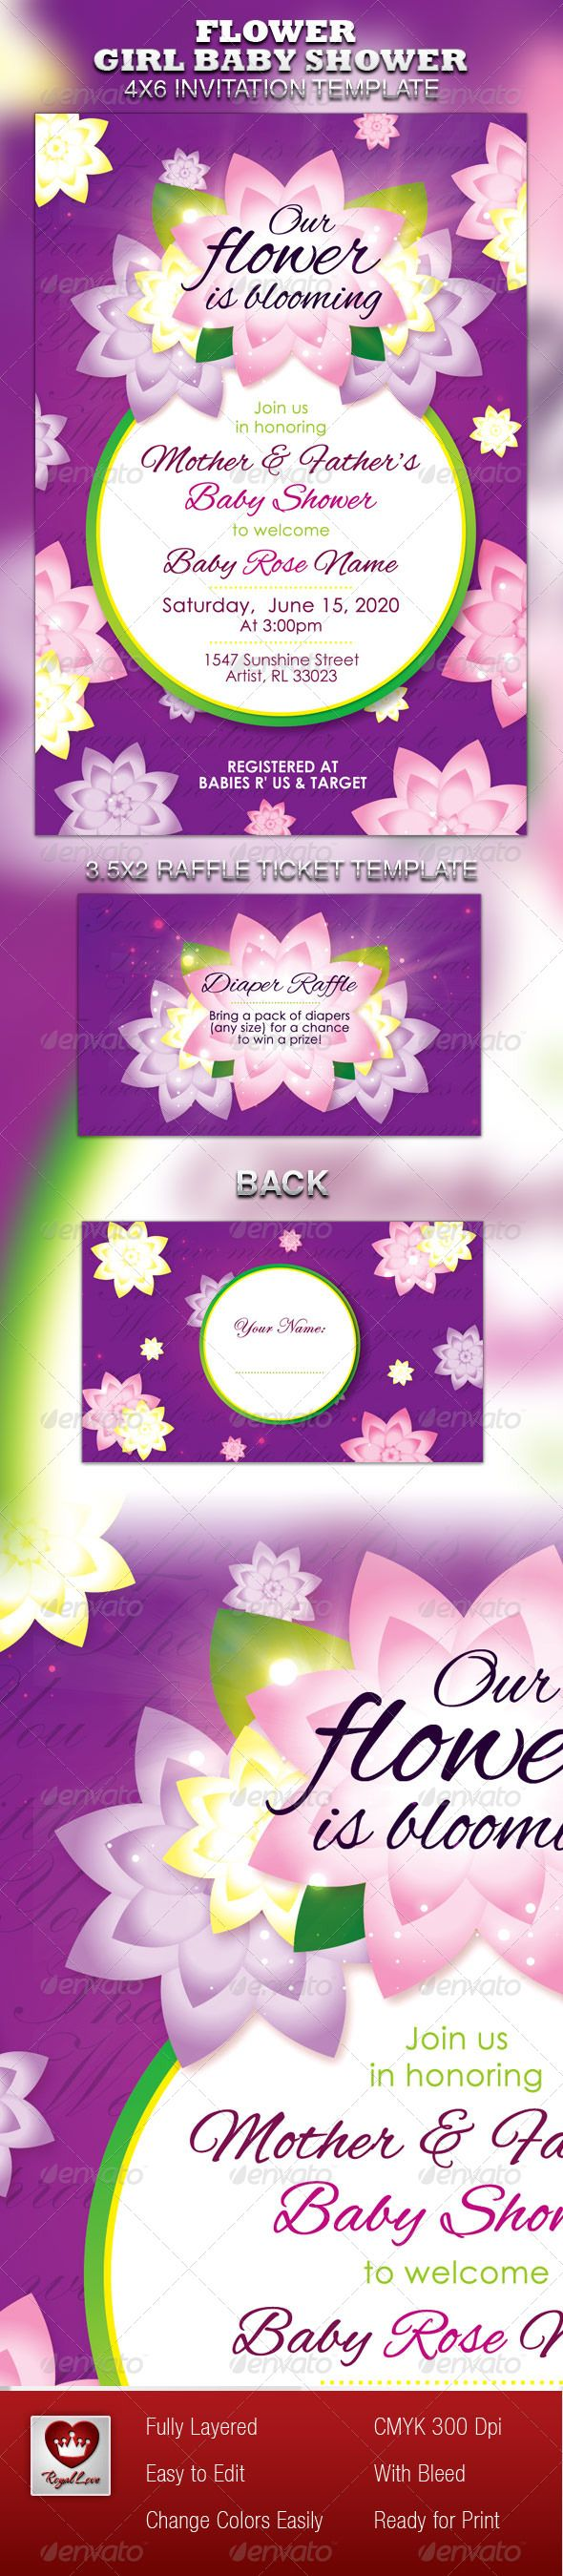 best ideas about raffle ticket printing baby flower girl baby shower invitation raffle ticket